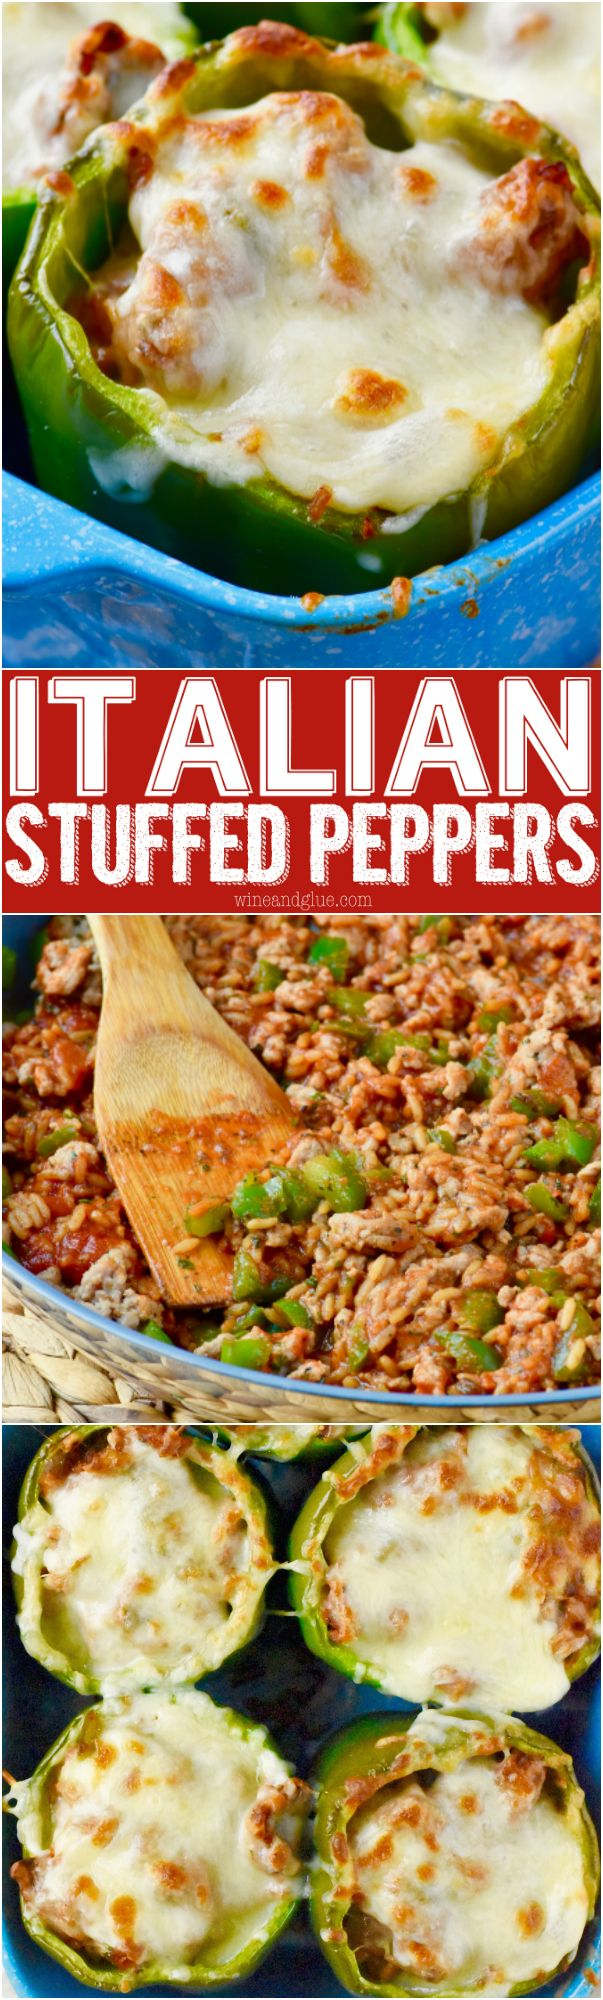 These Italian Stuffed Peppers are a perfect easy weeknight meal! A full, well rounded meal, all in one dish! (Paleo Beef Stuffed Peppers)